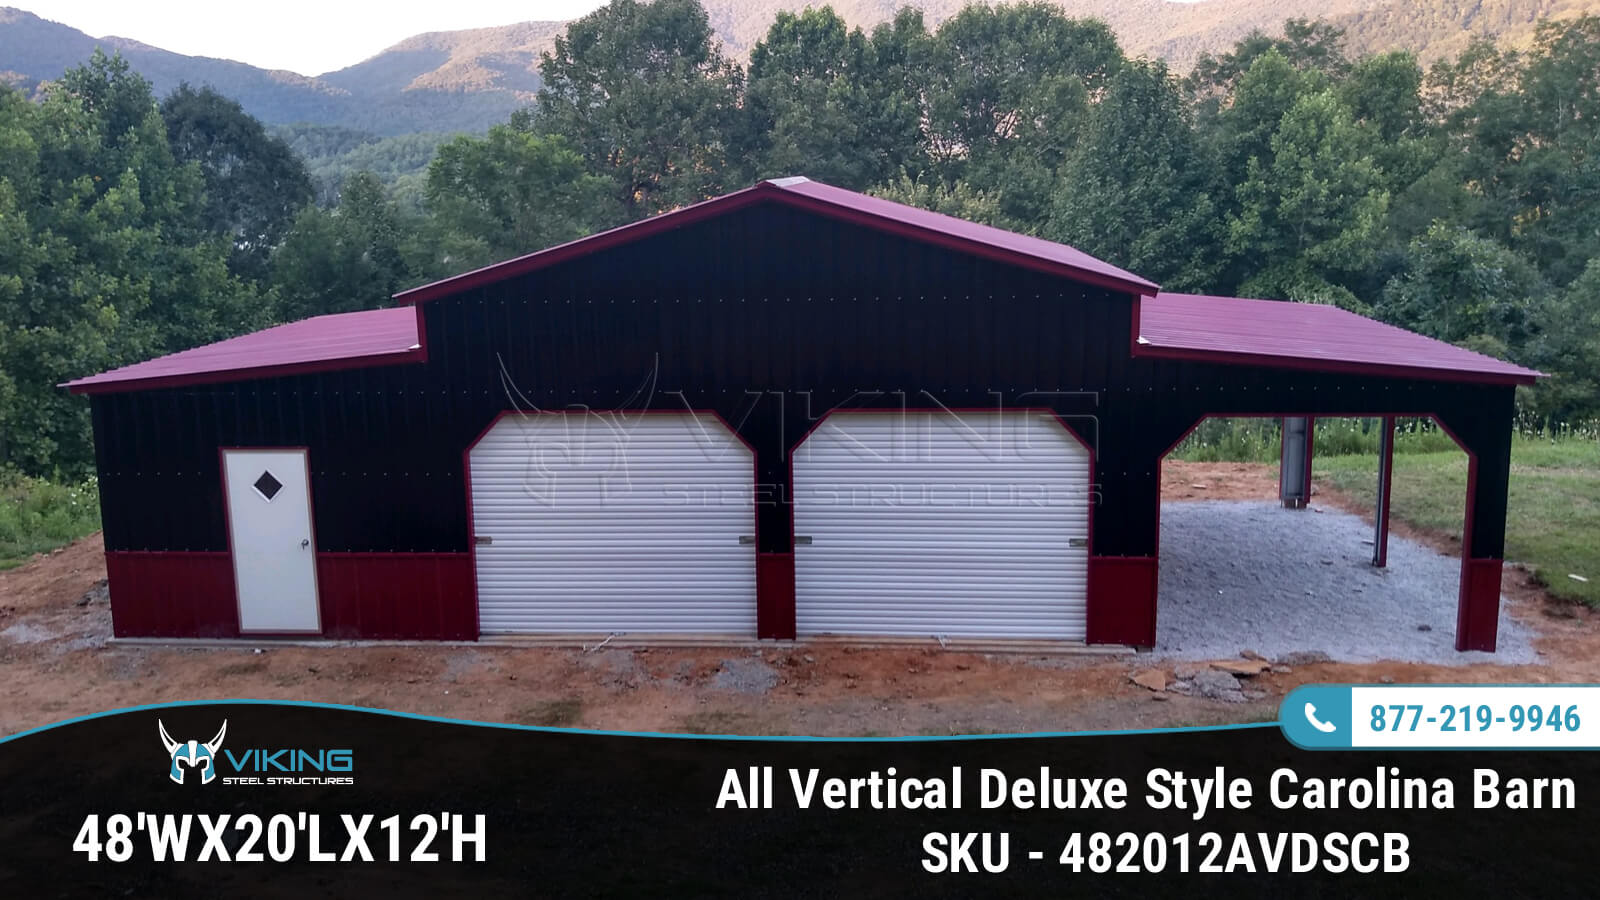 48'x20'x12' All Vertical Deluxe Style Carolina Barn